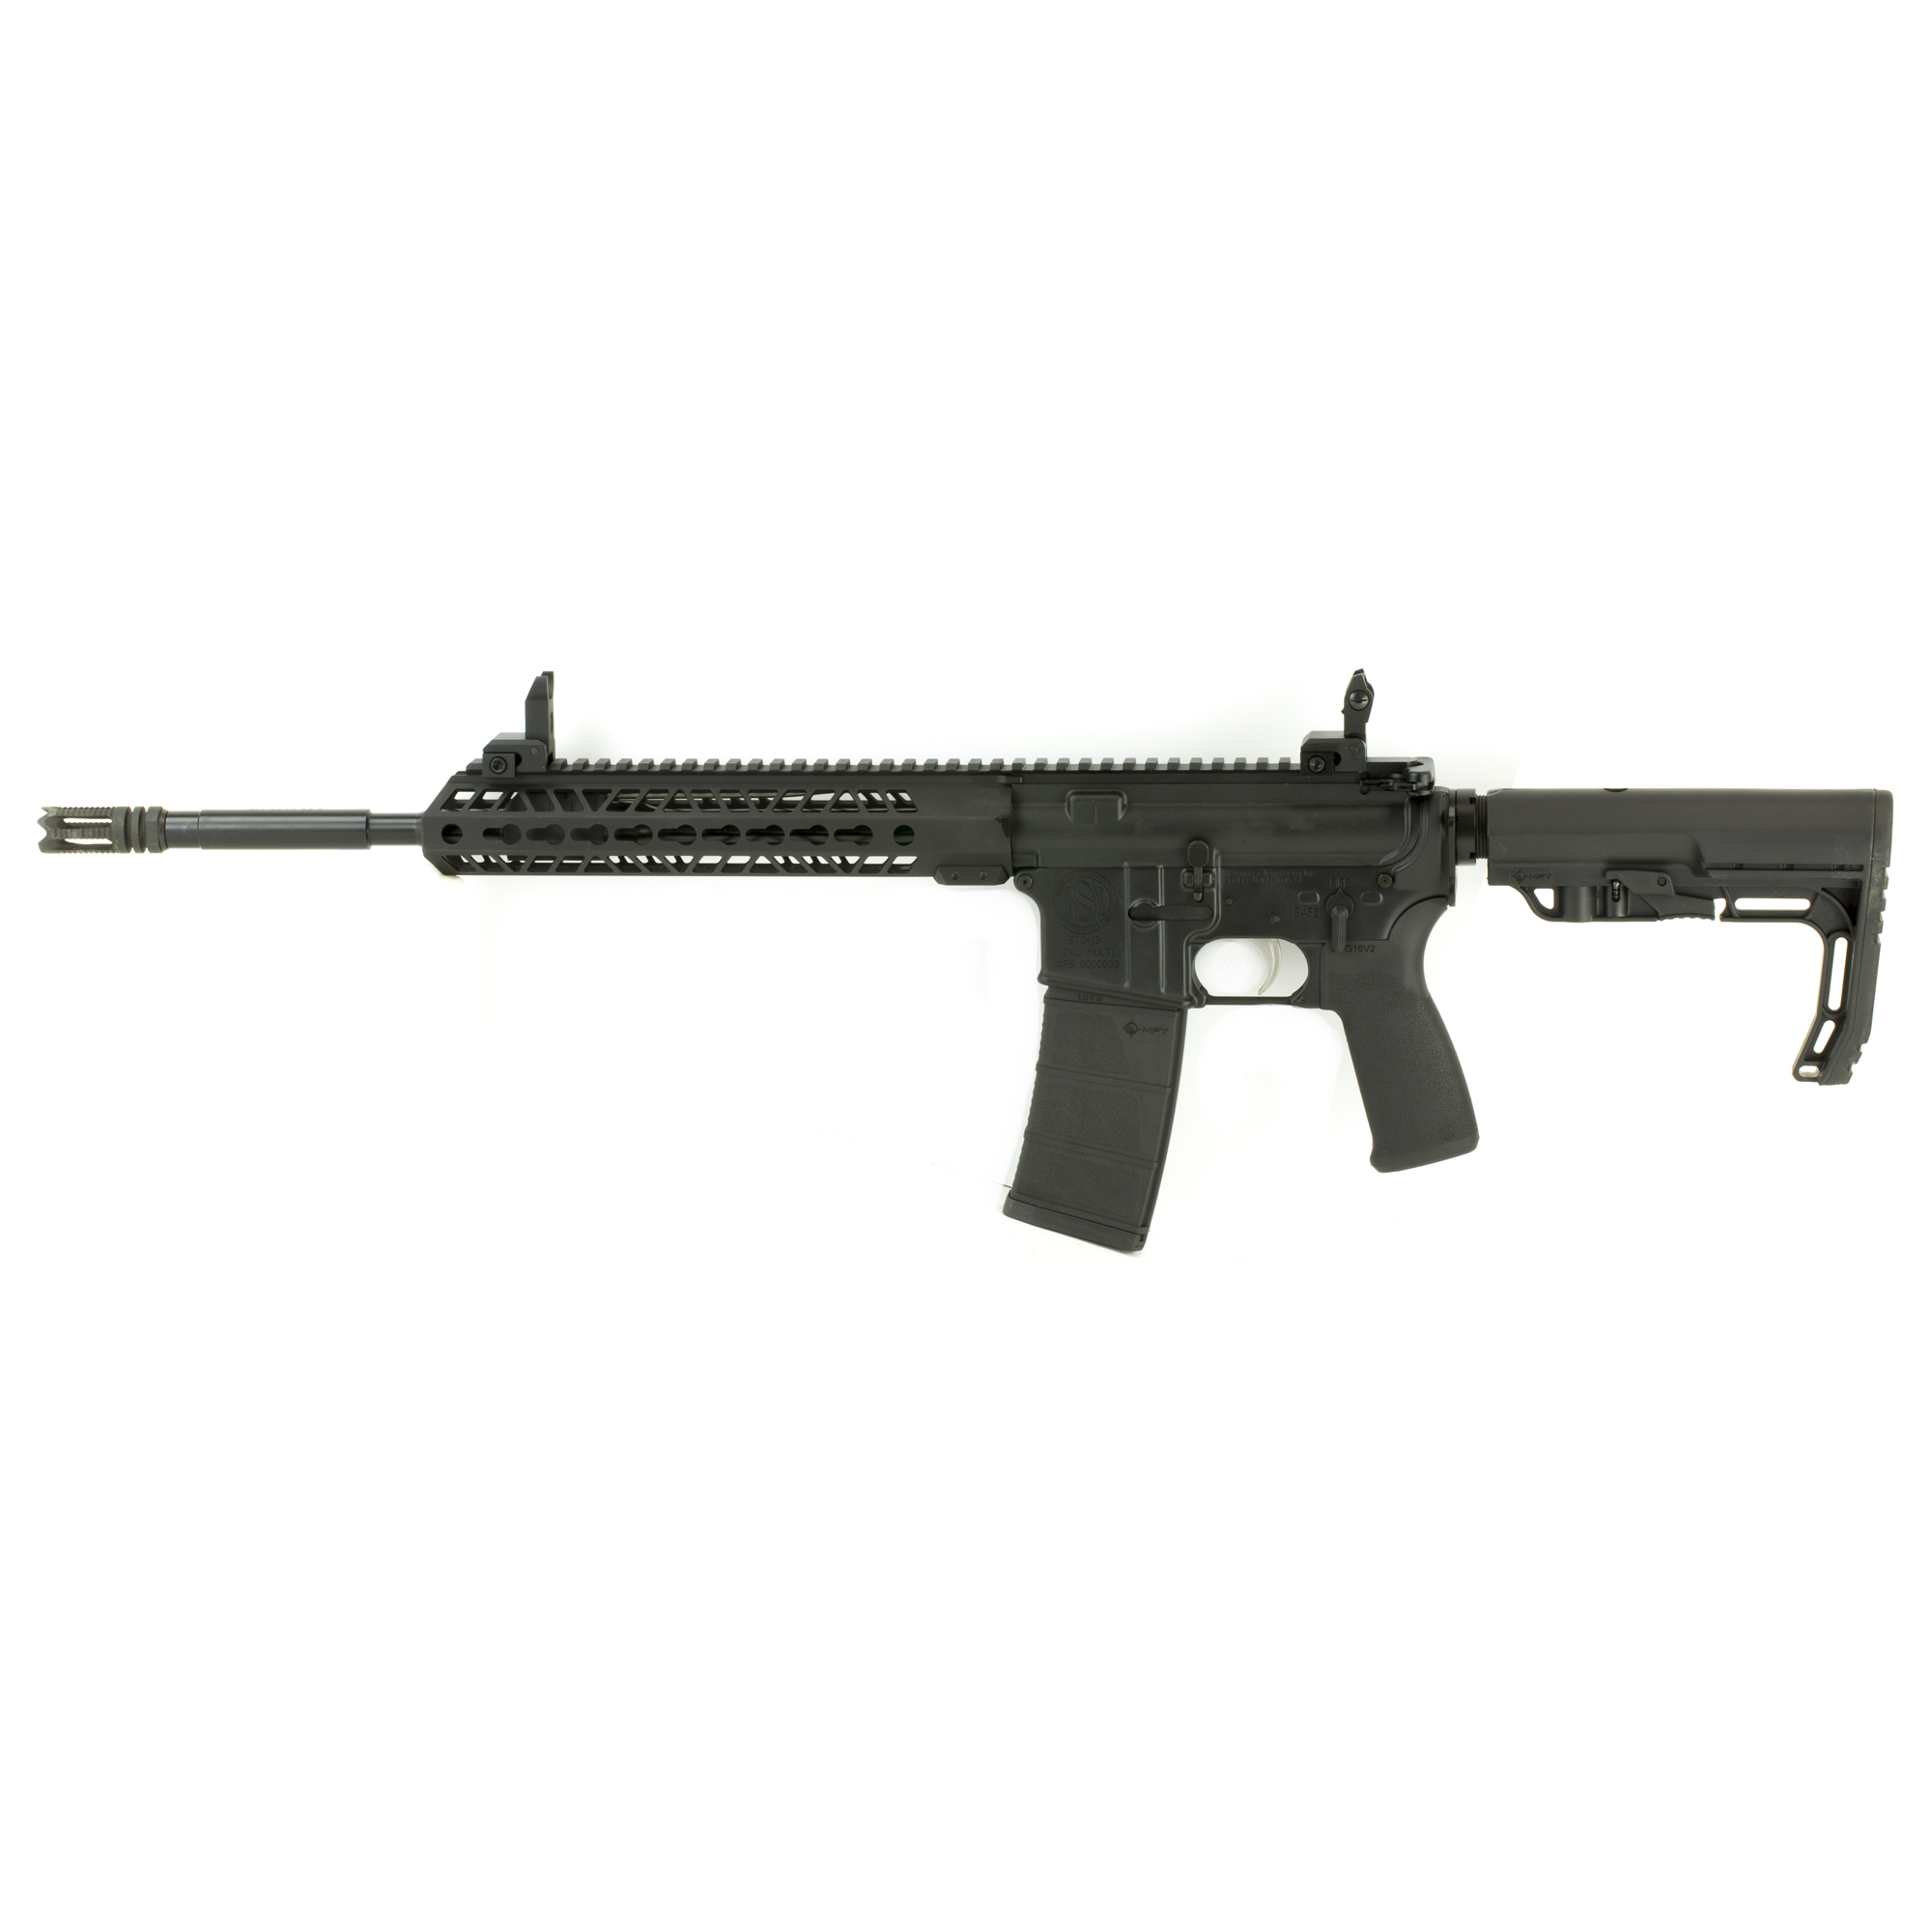 """The Standard Model B is a range-ready carbine with factory installed iron sights"""" a free float barrel"""" and extended aluminum hand guard. This model has 4150 CMV (Chrome Moly Vanadium) barrel chambered in 5.56 NATO. The Model B also features a Mission First Tactical Minimalist Buttstock and a Standard Mfg. Co. 10"""" KeyMod free float hand guard."""